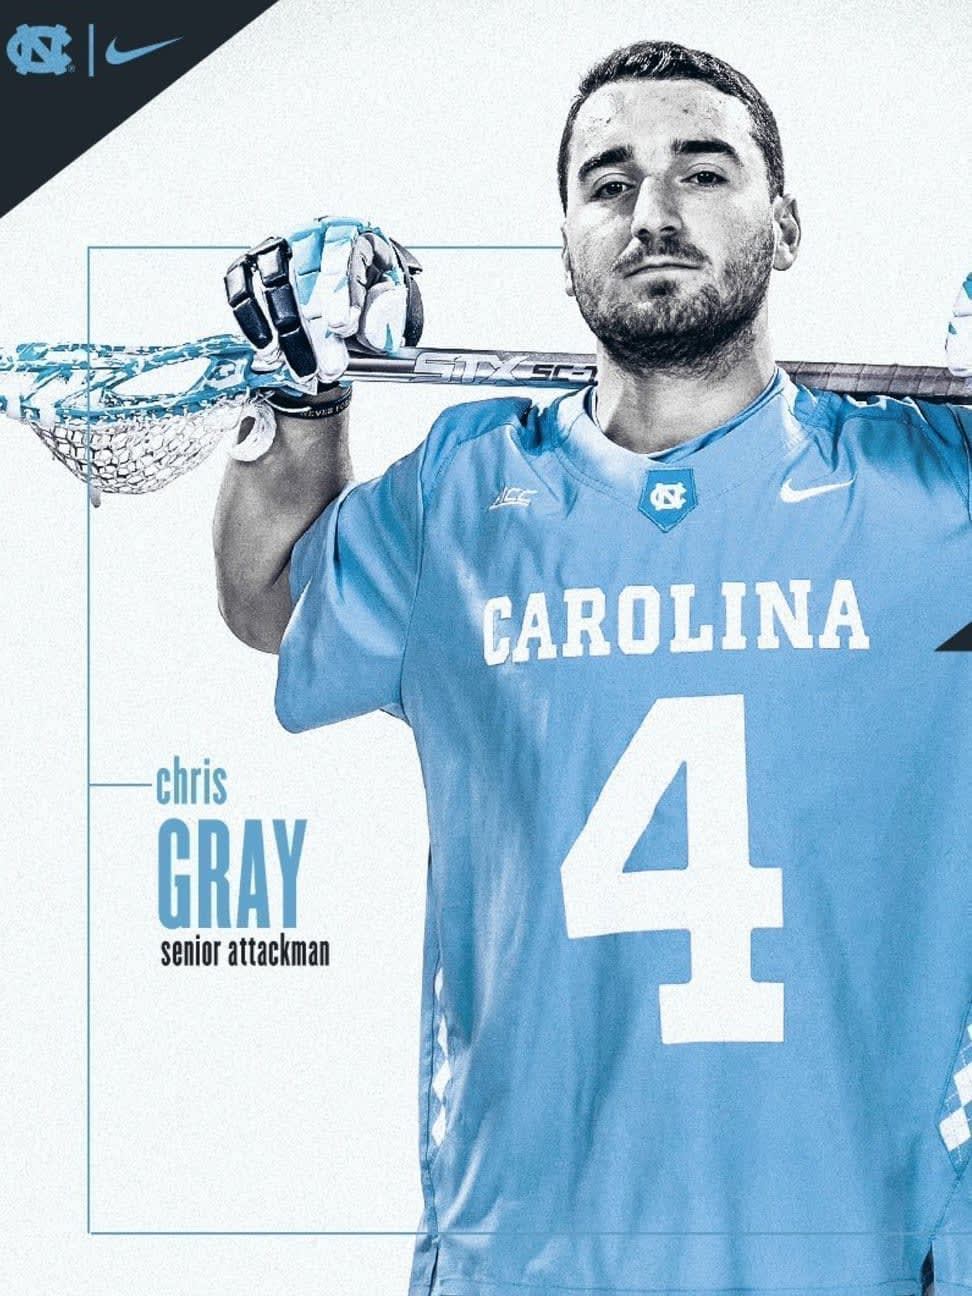 Chris Gray scored four in No. 2 North Carolina's win over Jacksonville, 18-7, one of the many storylines of NCAA DI Week 1.